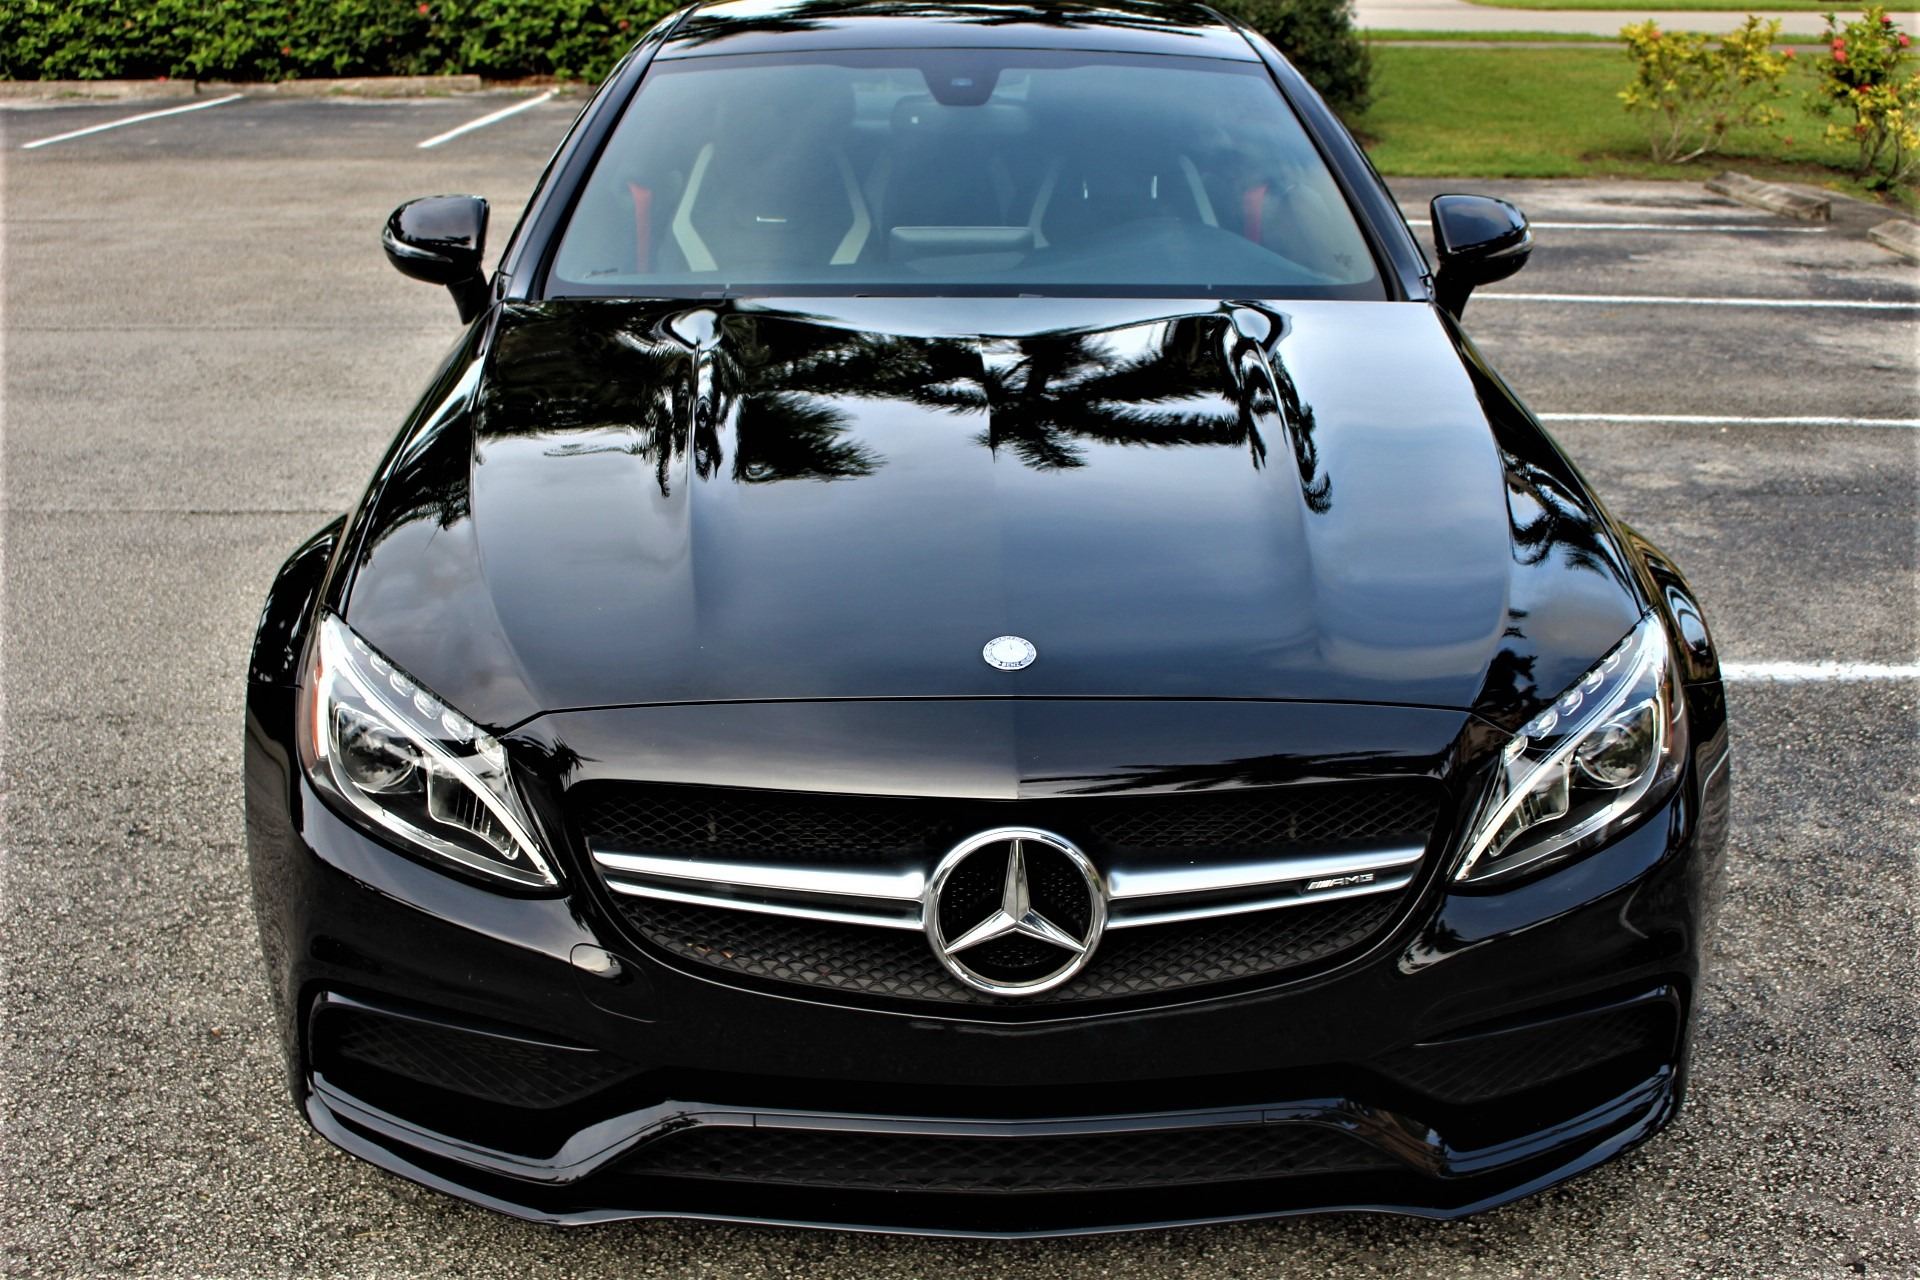 Used 2017 Mercedes-Benz C-Class AMG C 63 S for sale Sold at The Gables Sports Cars in Miami FL 33146 4